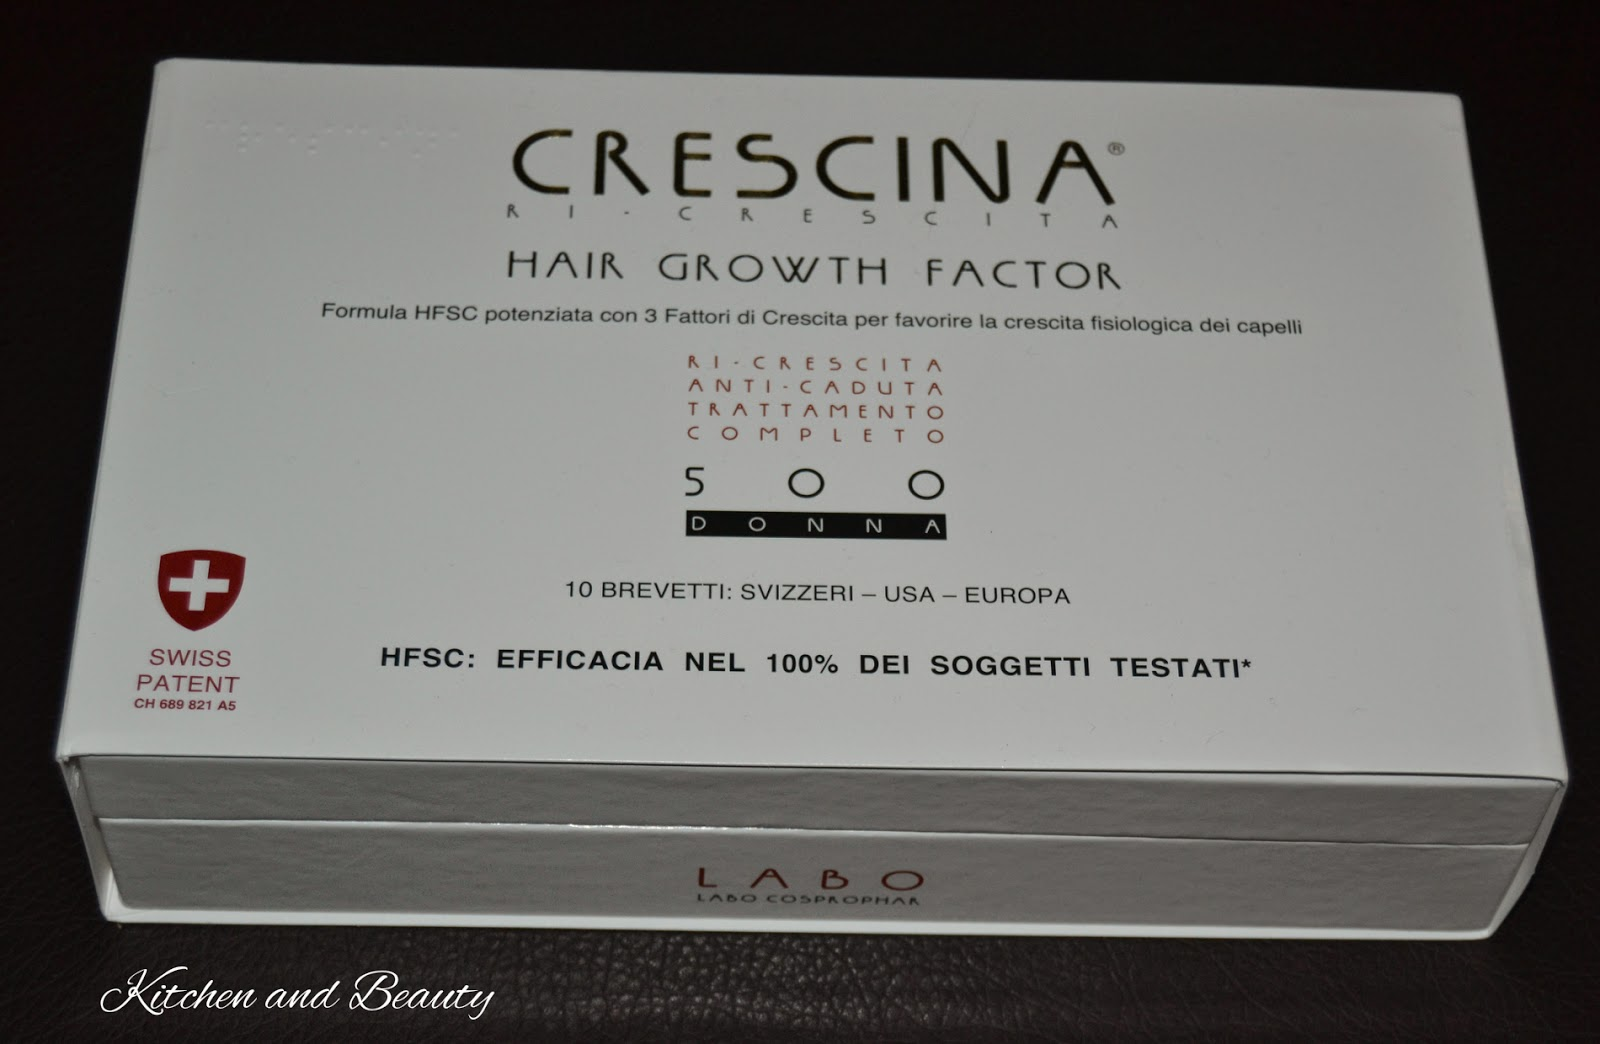 Crescina HFSC 100% - 100% Effectiveness in the subjects ...